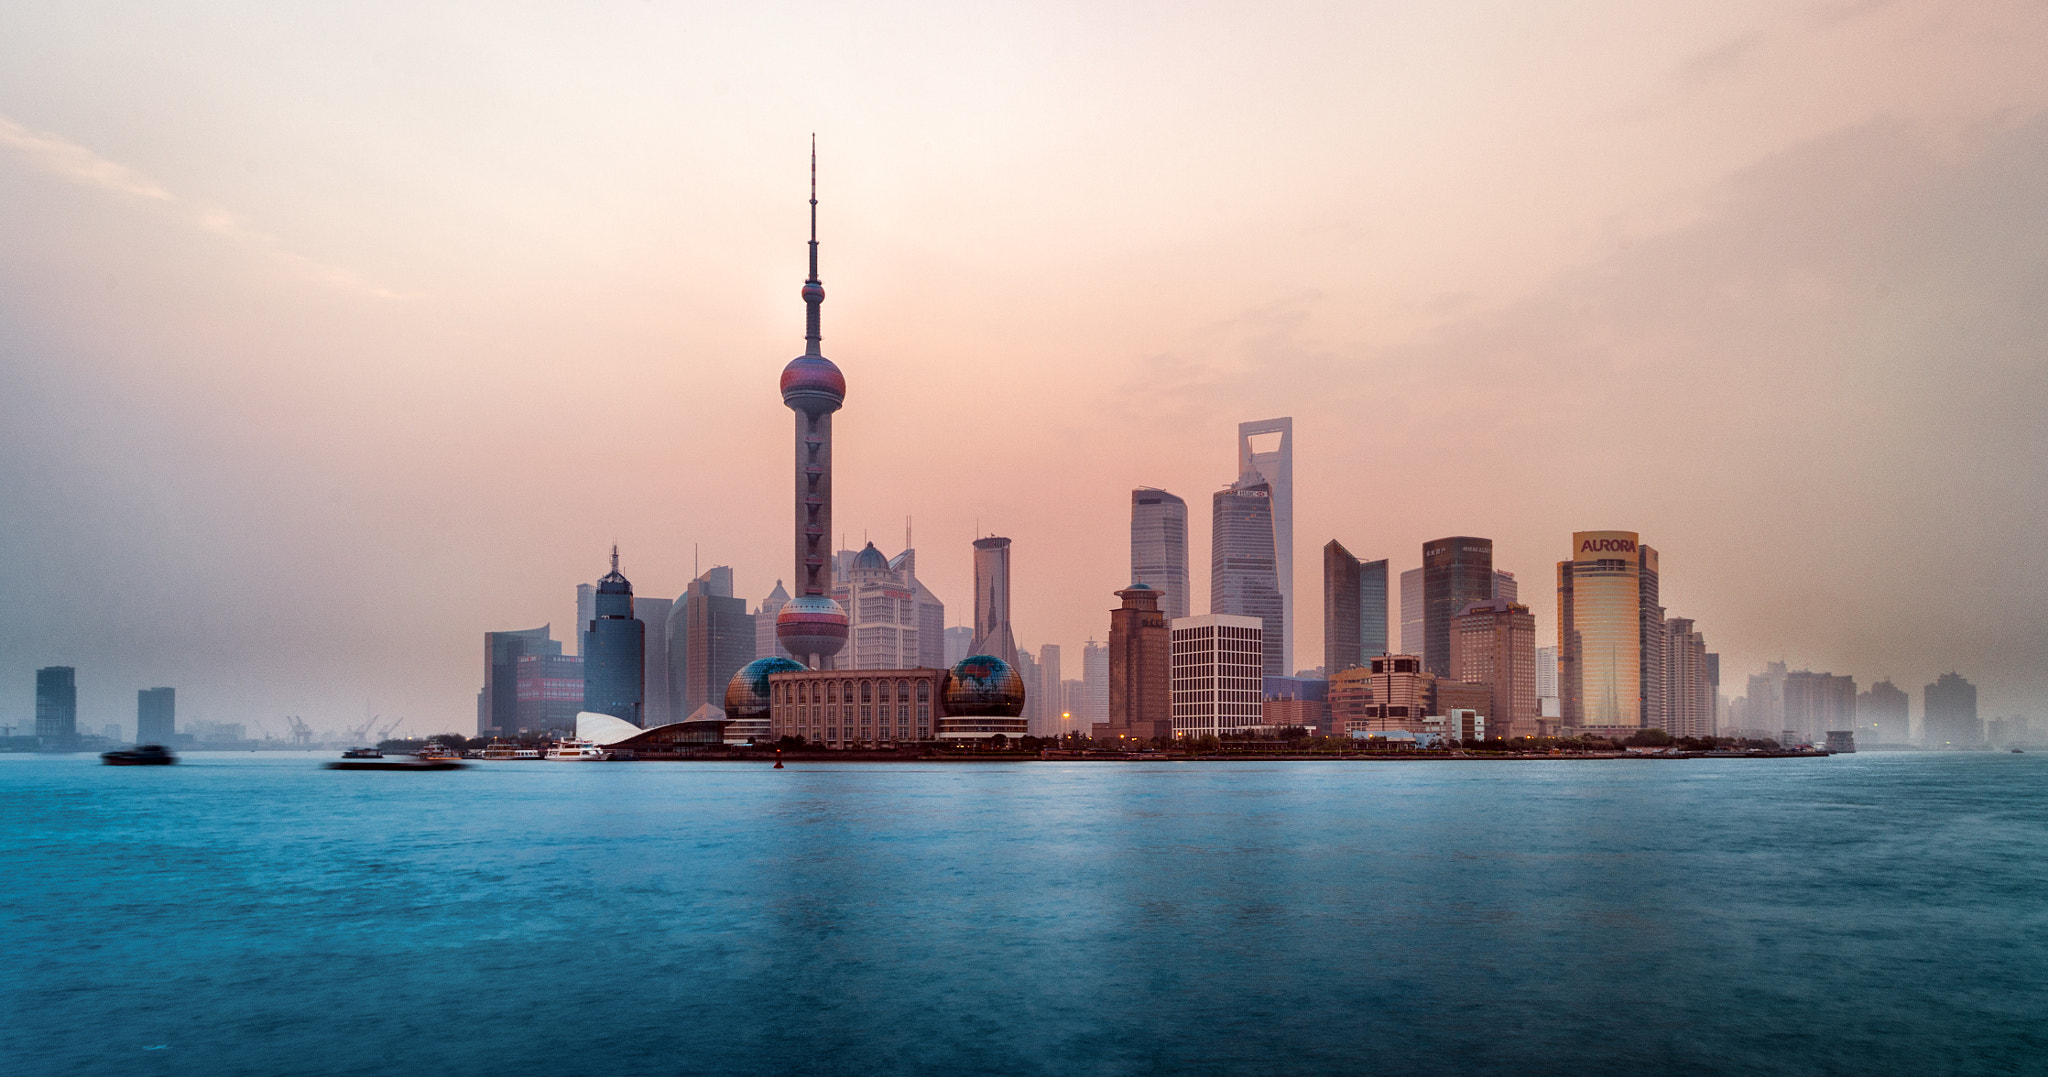 Photograph Shanghai at dawn by Simon Linge on 500px